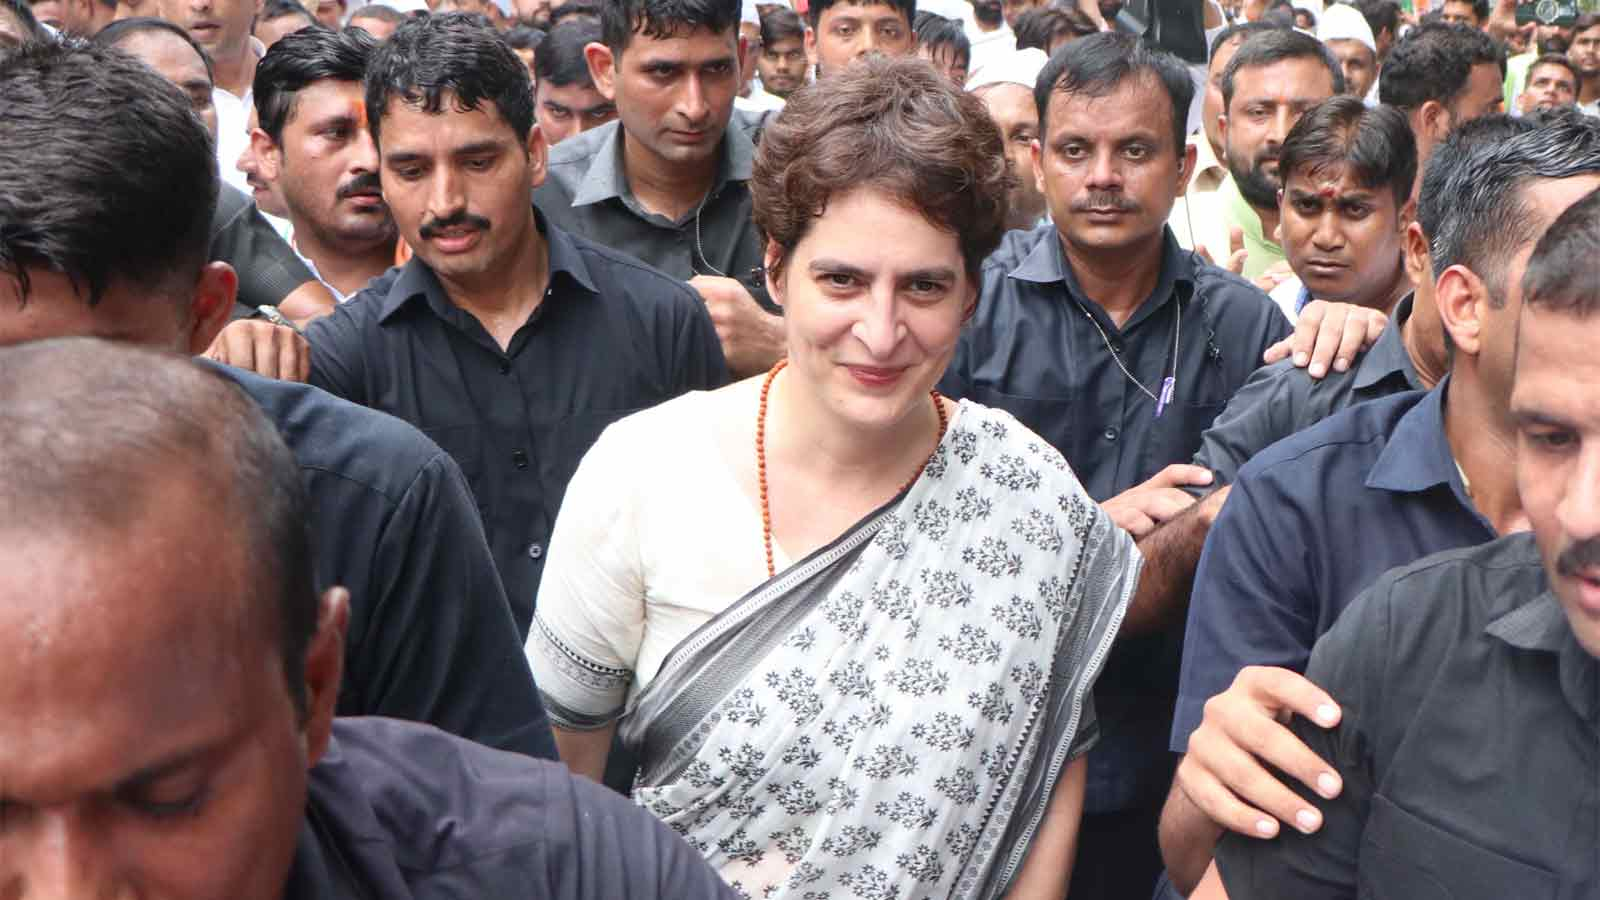 rajniti-hai-hoti-rehti-hai-priyanka-gandhi-on-spg-cover-removal-for-her-family